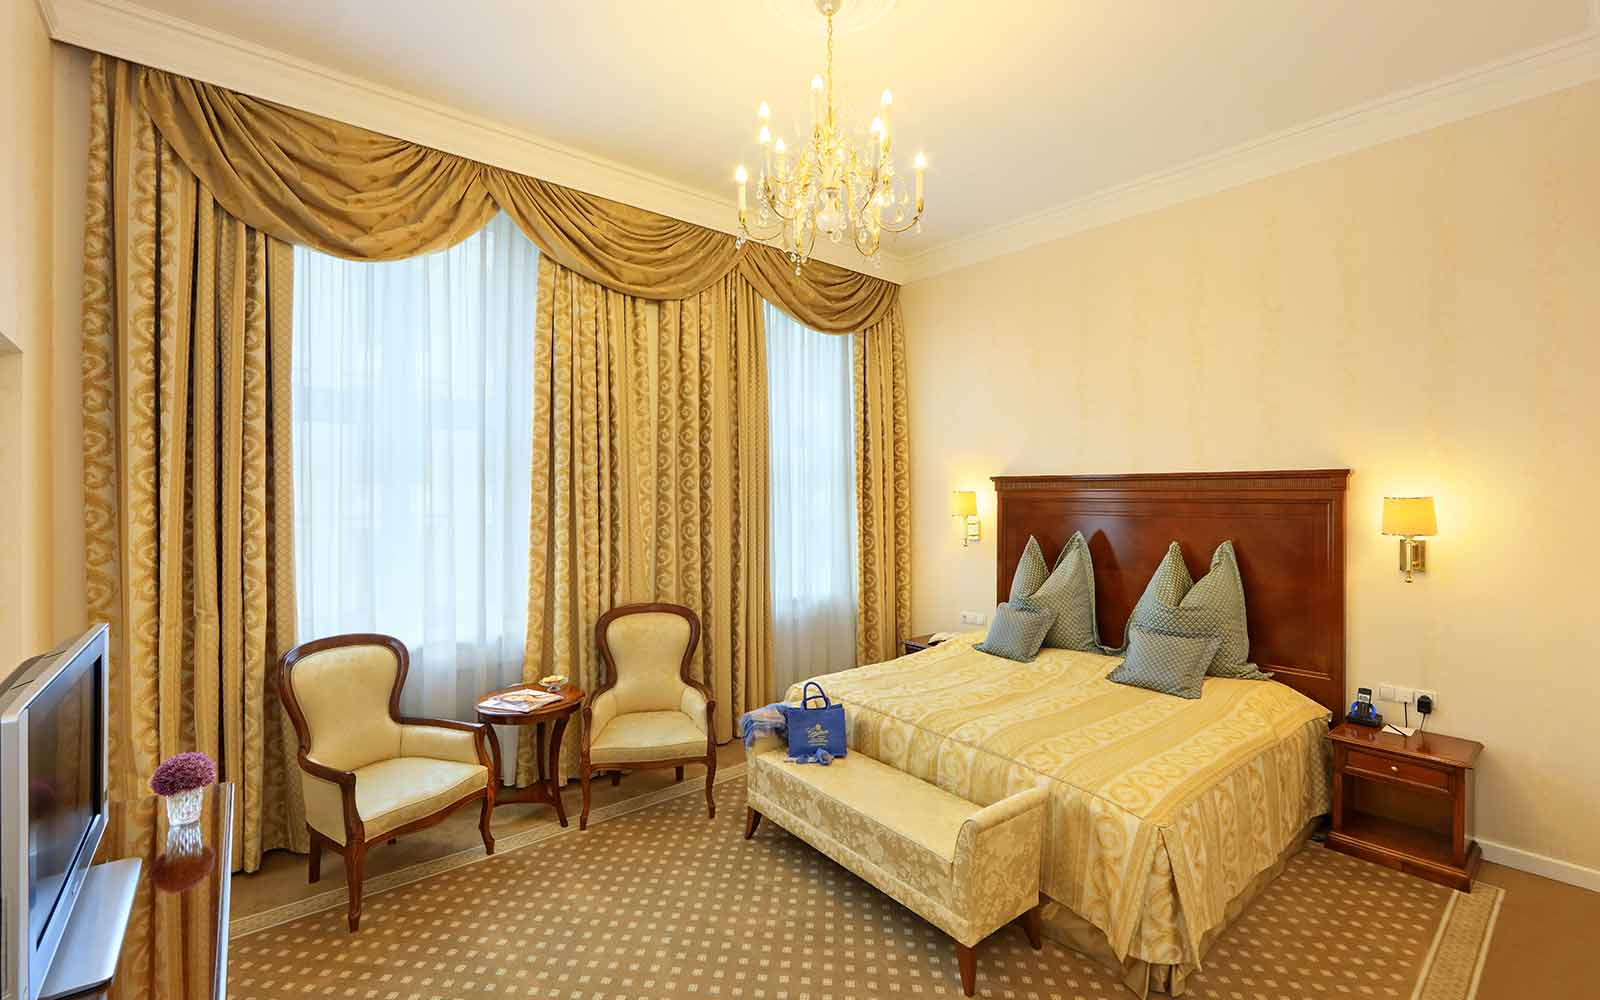 Rooms hotel de france wien gerstner imperial hotels for Zimmer suite